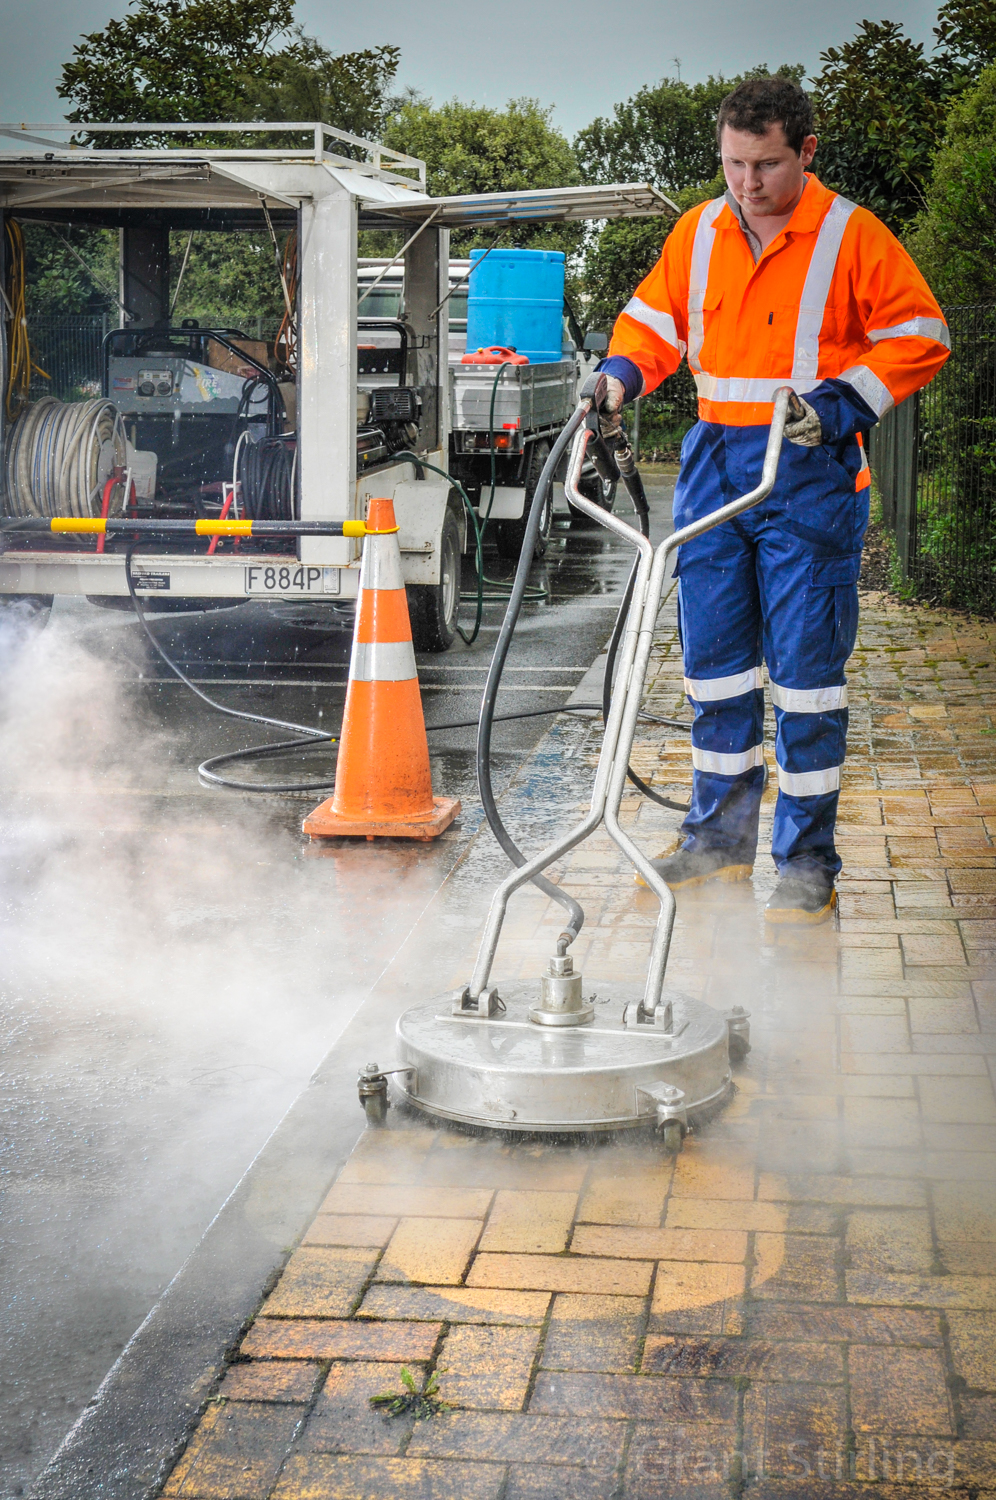 Concrete steam cleaner